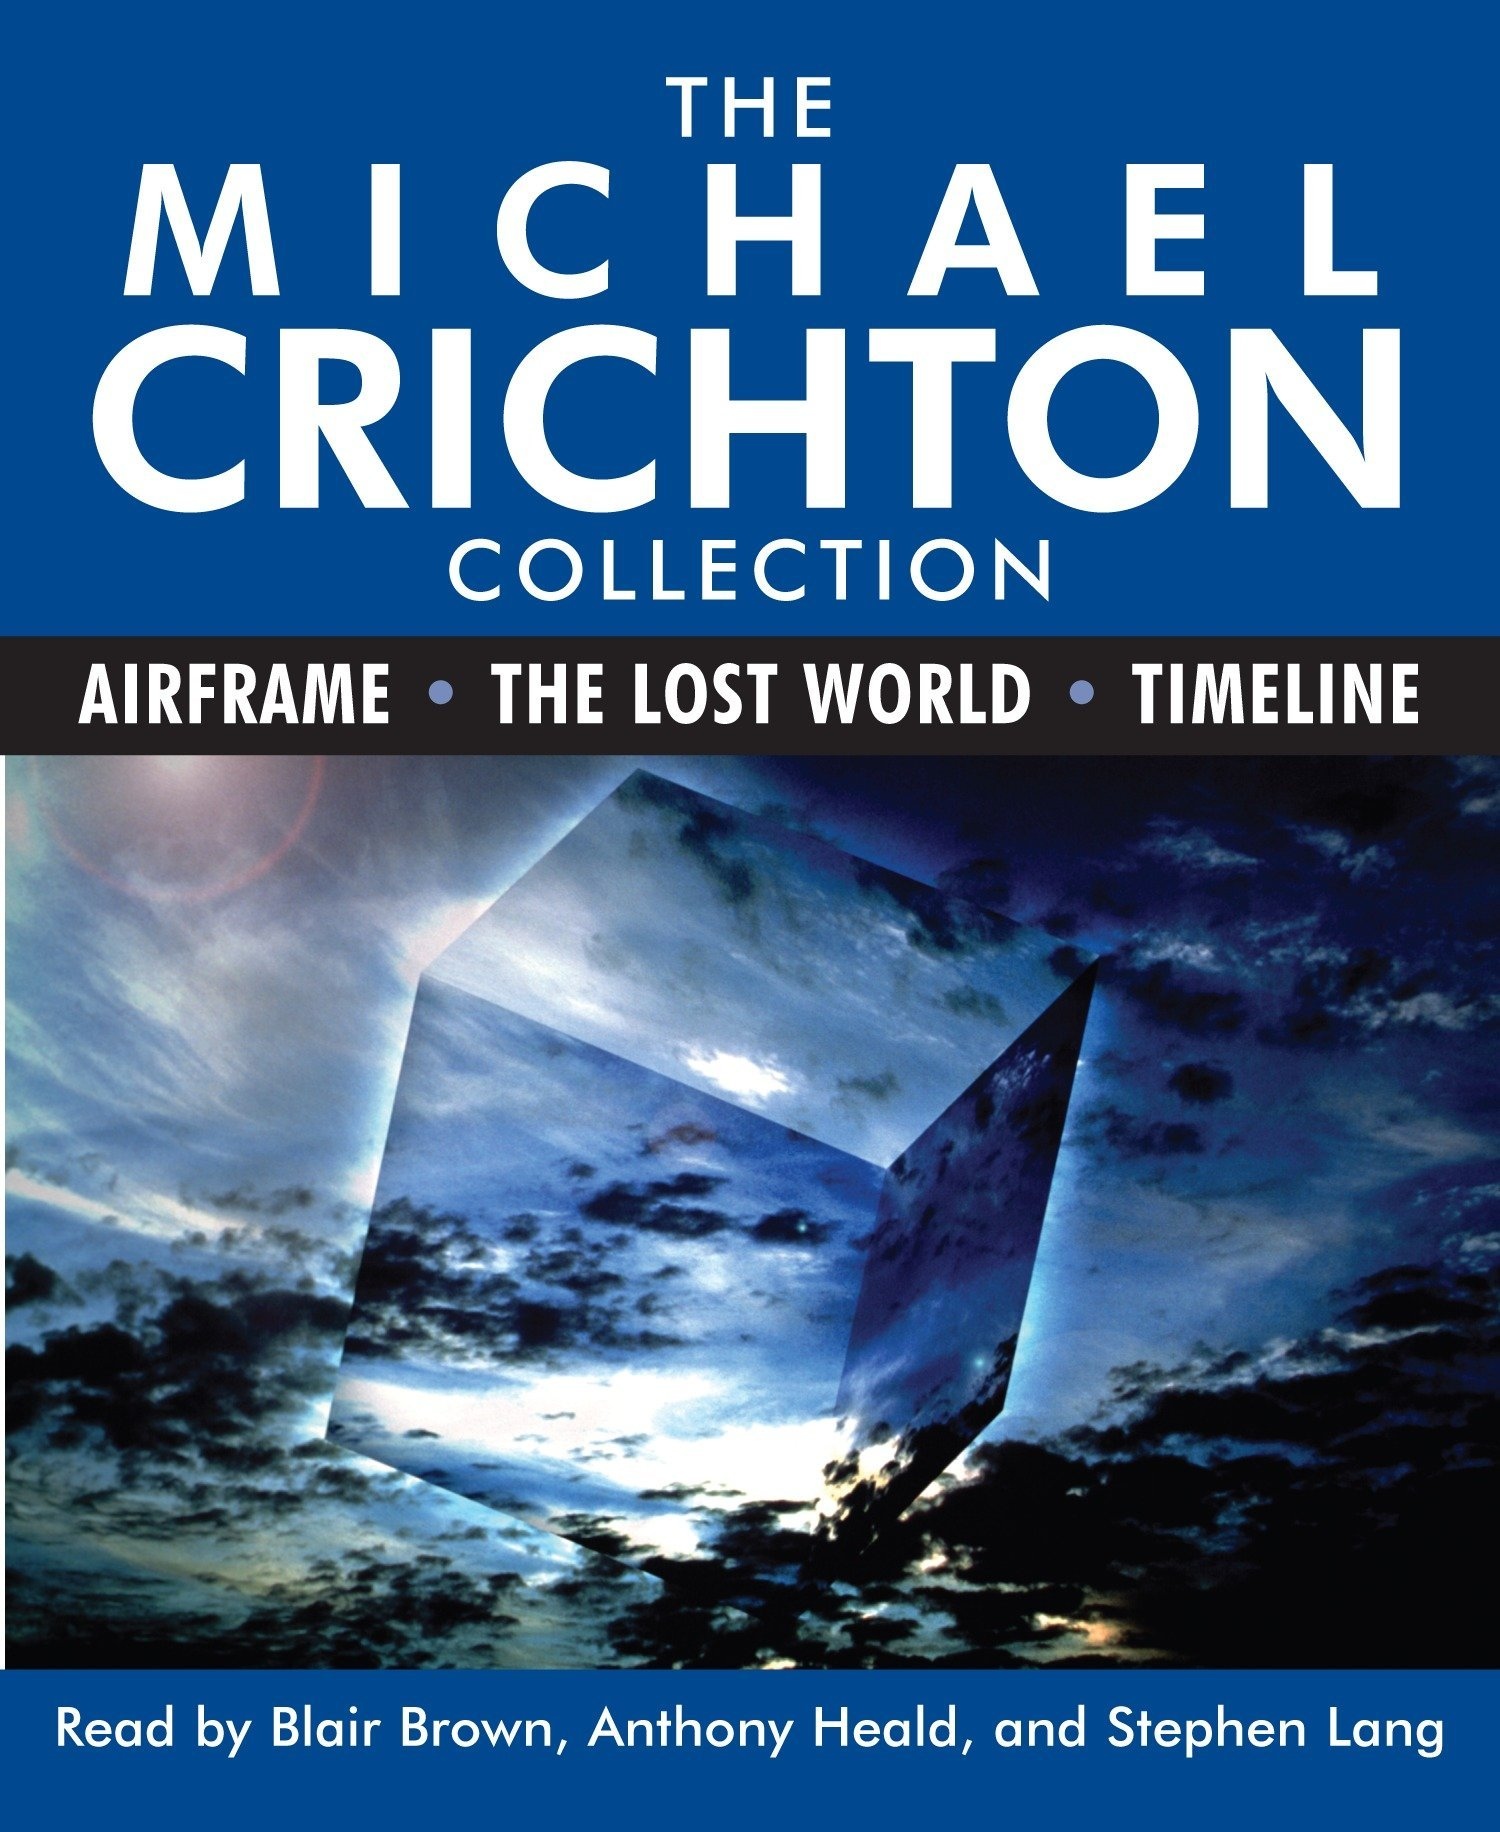 The Michael Crichton Collection: Airframe, The Lost World, and Timeline by Brand: Random House Audio